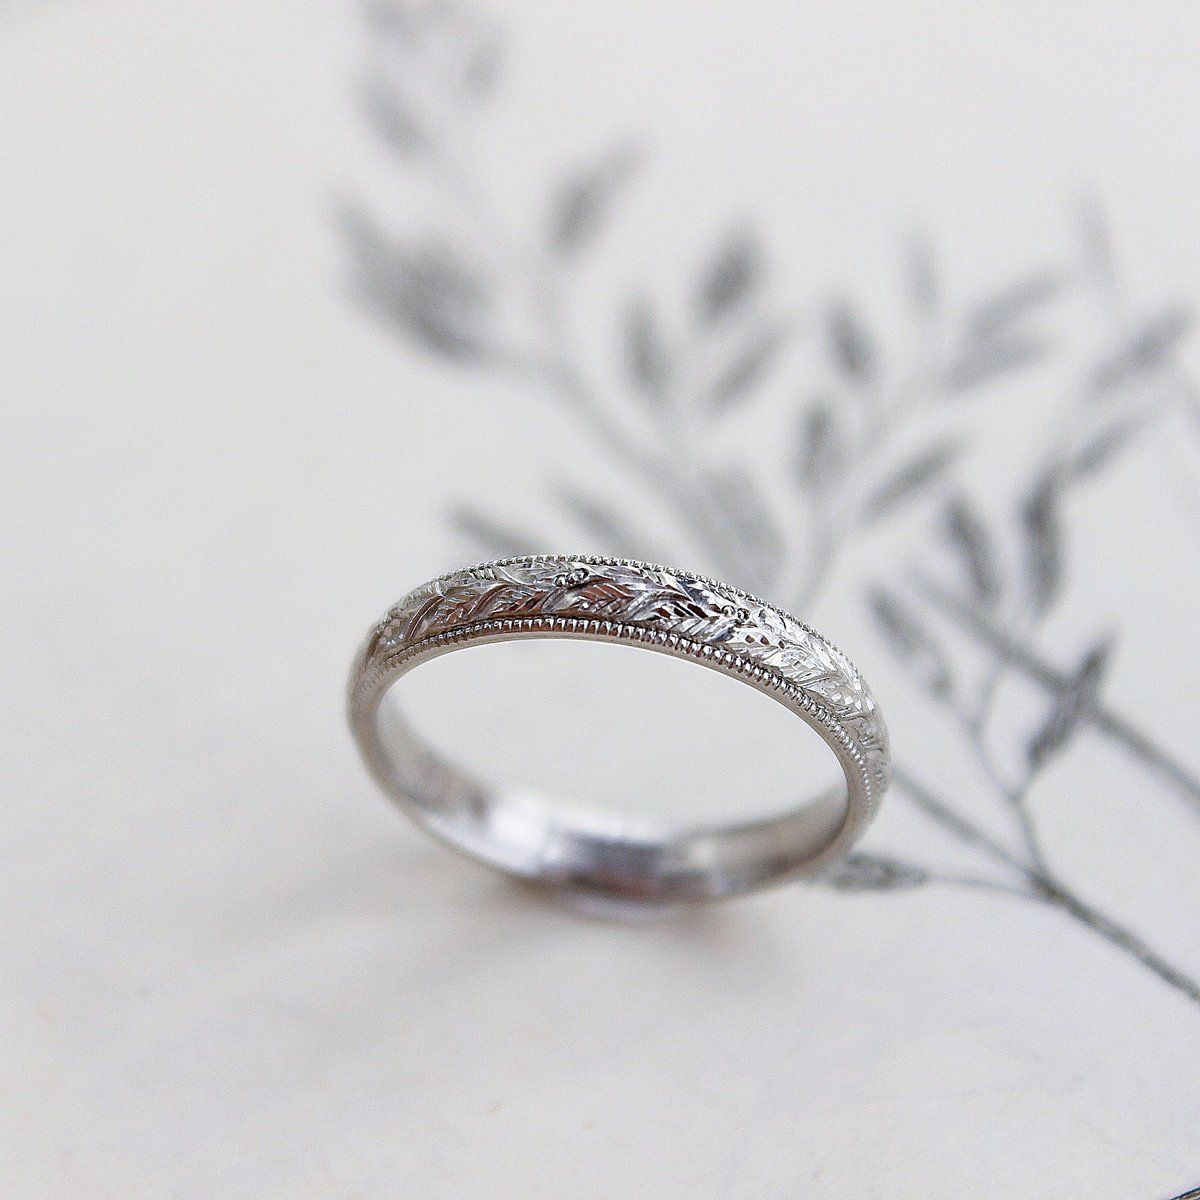 18ct white gold 3mm laurel leaf and milled edge engraved